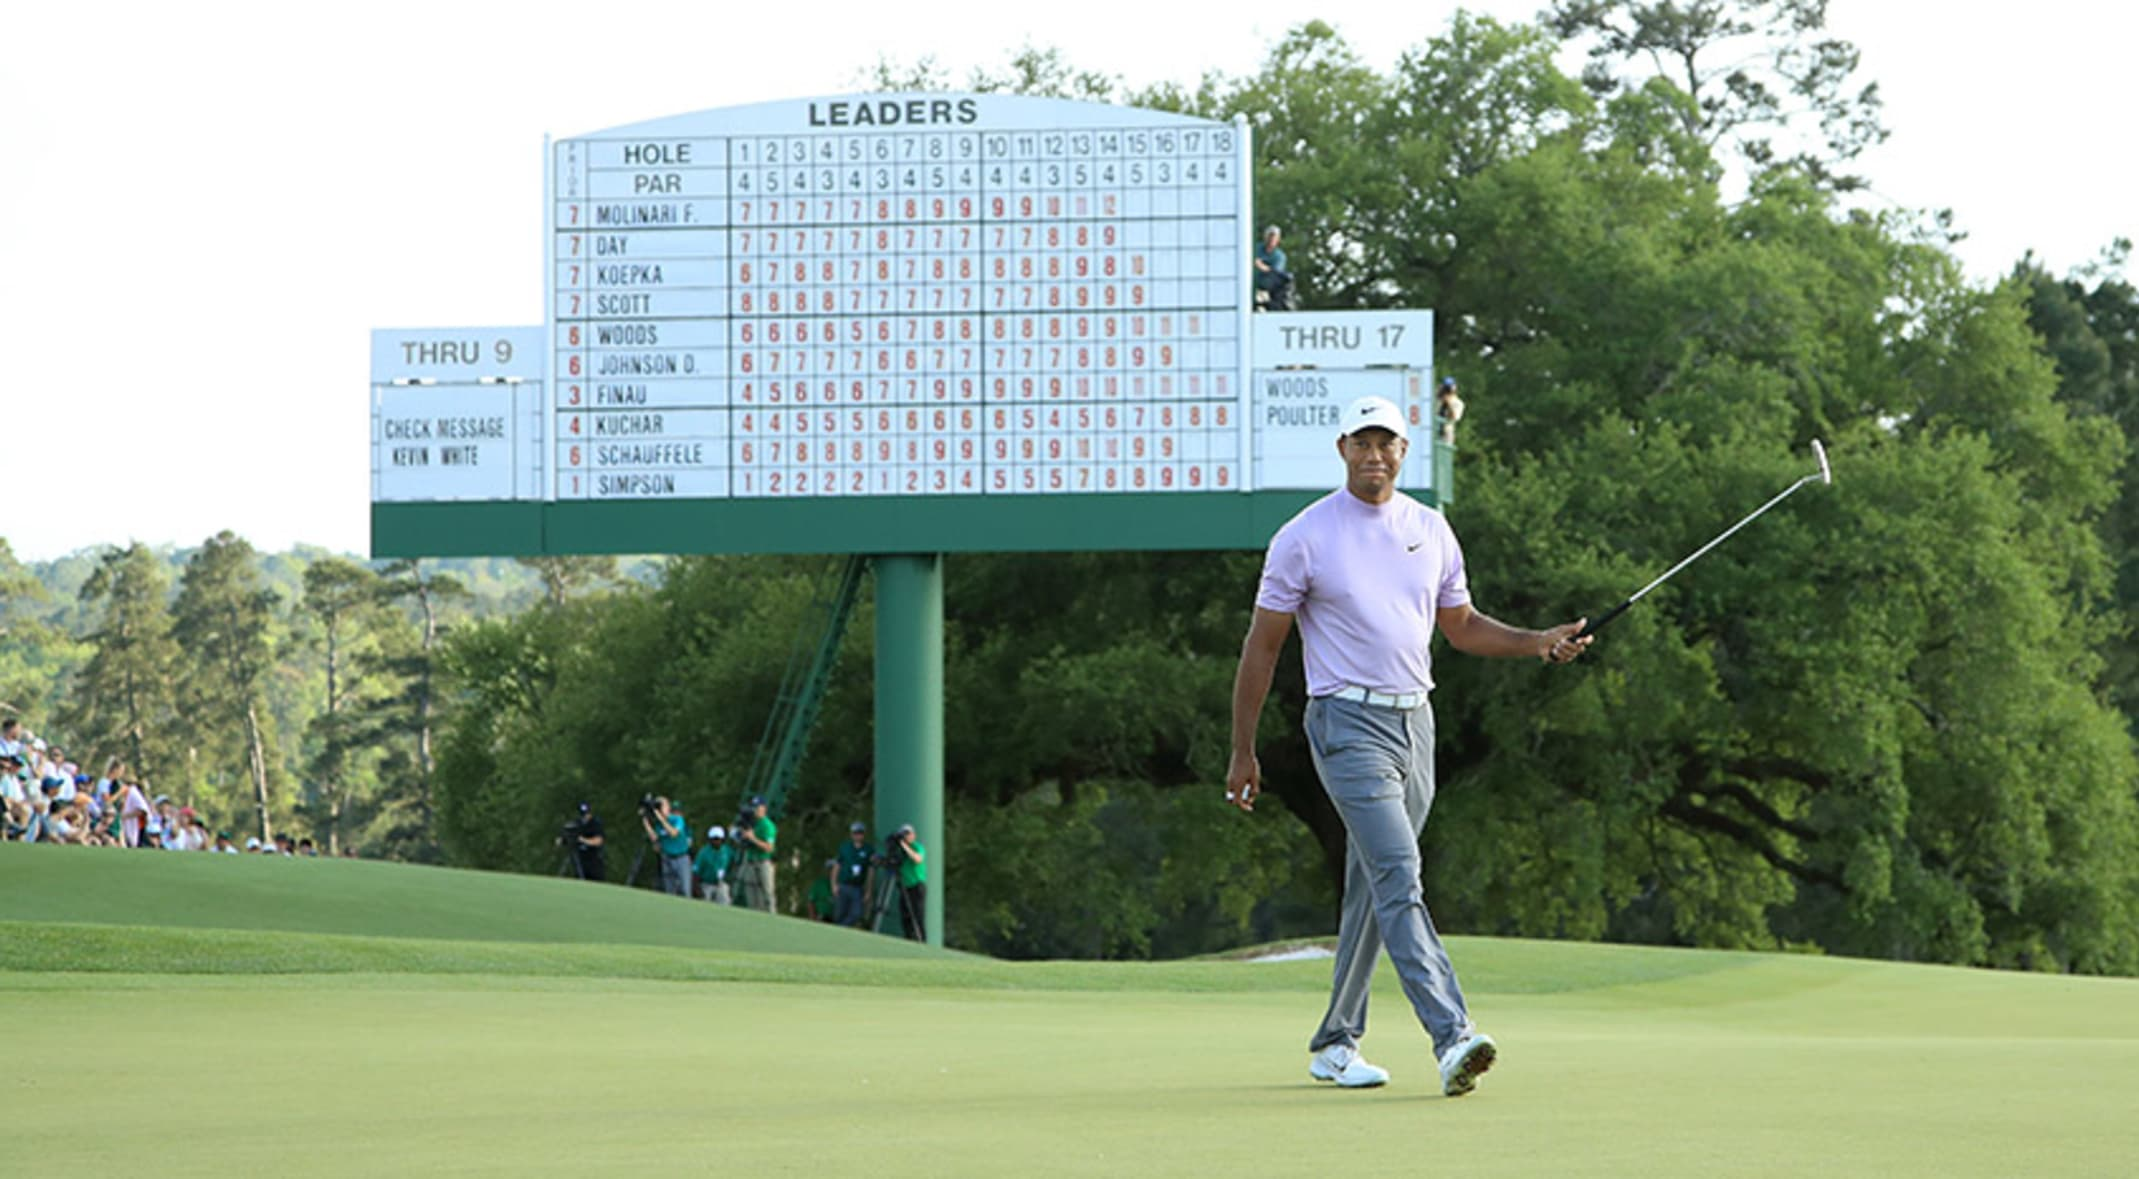 bb98301f9453c Tiger Woods will be in the final group on Sunday at the Masters. (Andrew